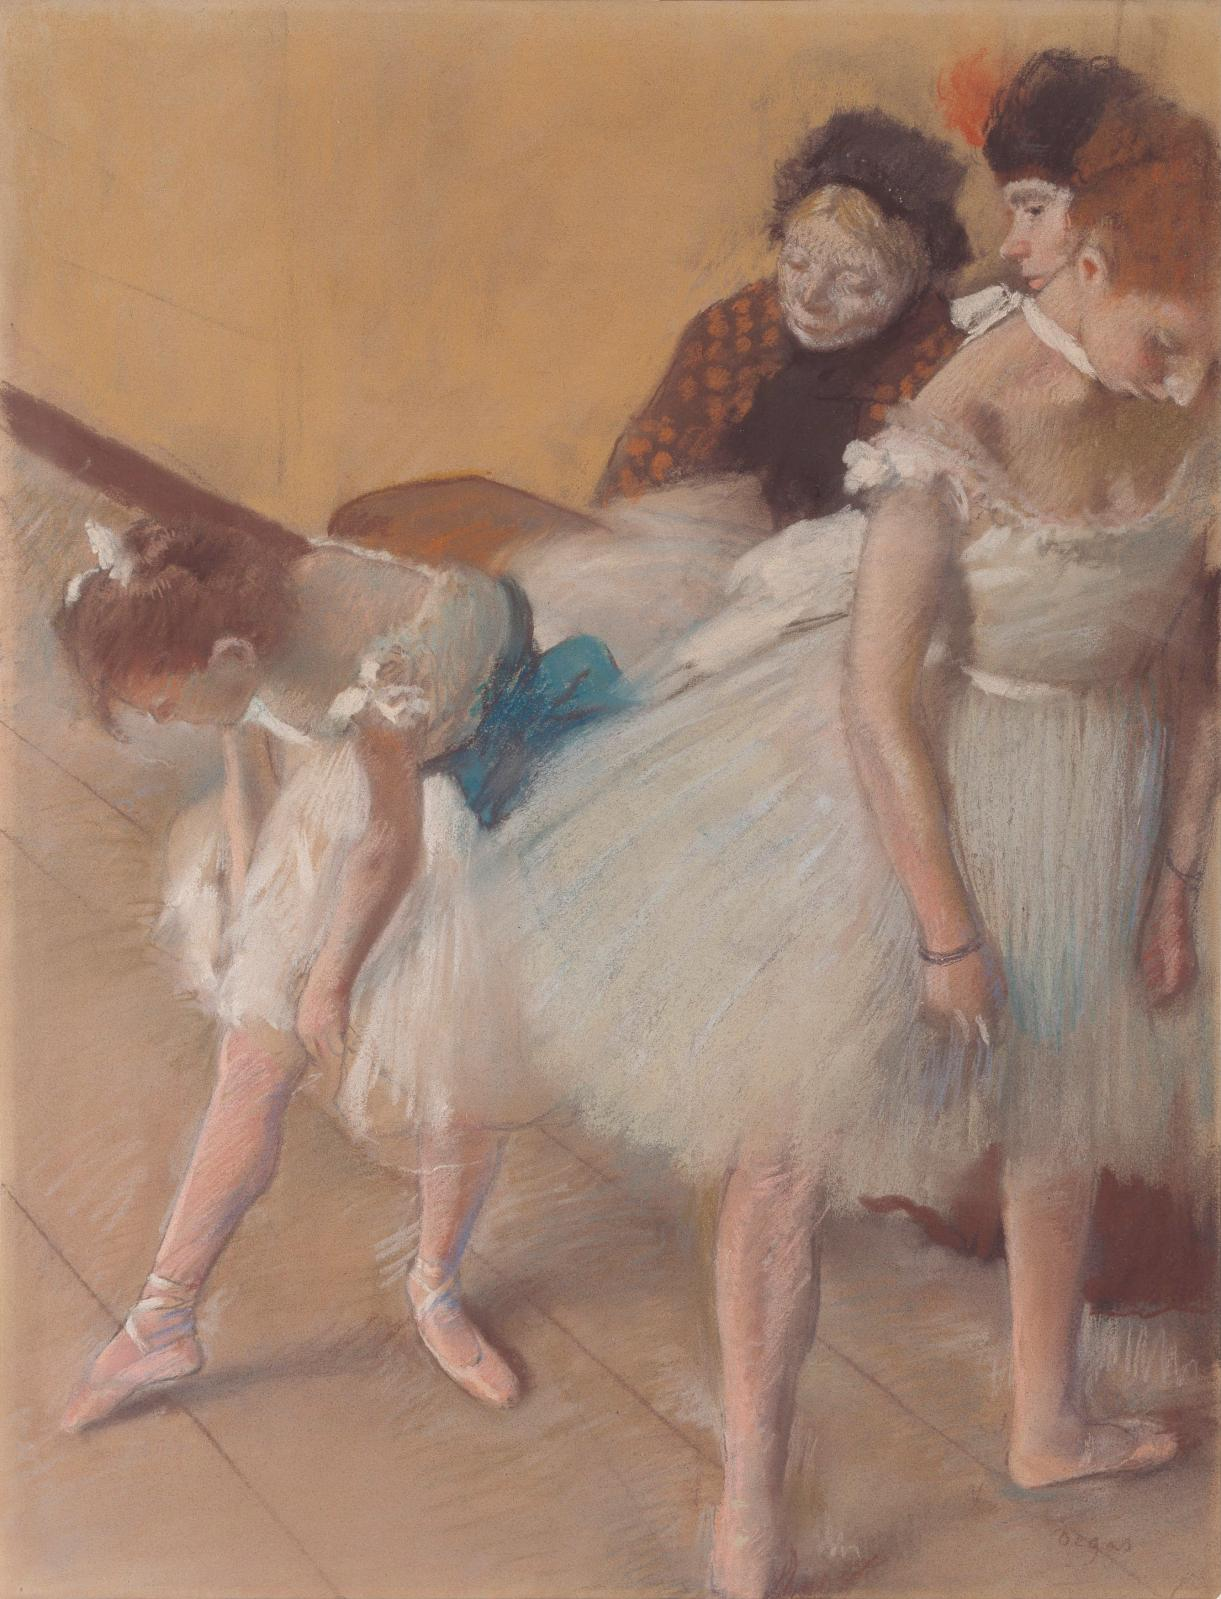 Examen de danse (The Dancing examination), 1880, pastel on paper, Denver, Denver Art Museum.© COURTESY DENVER ART MUSEUM